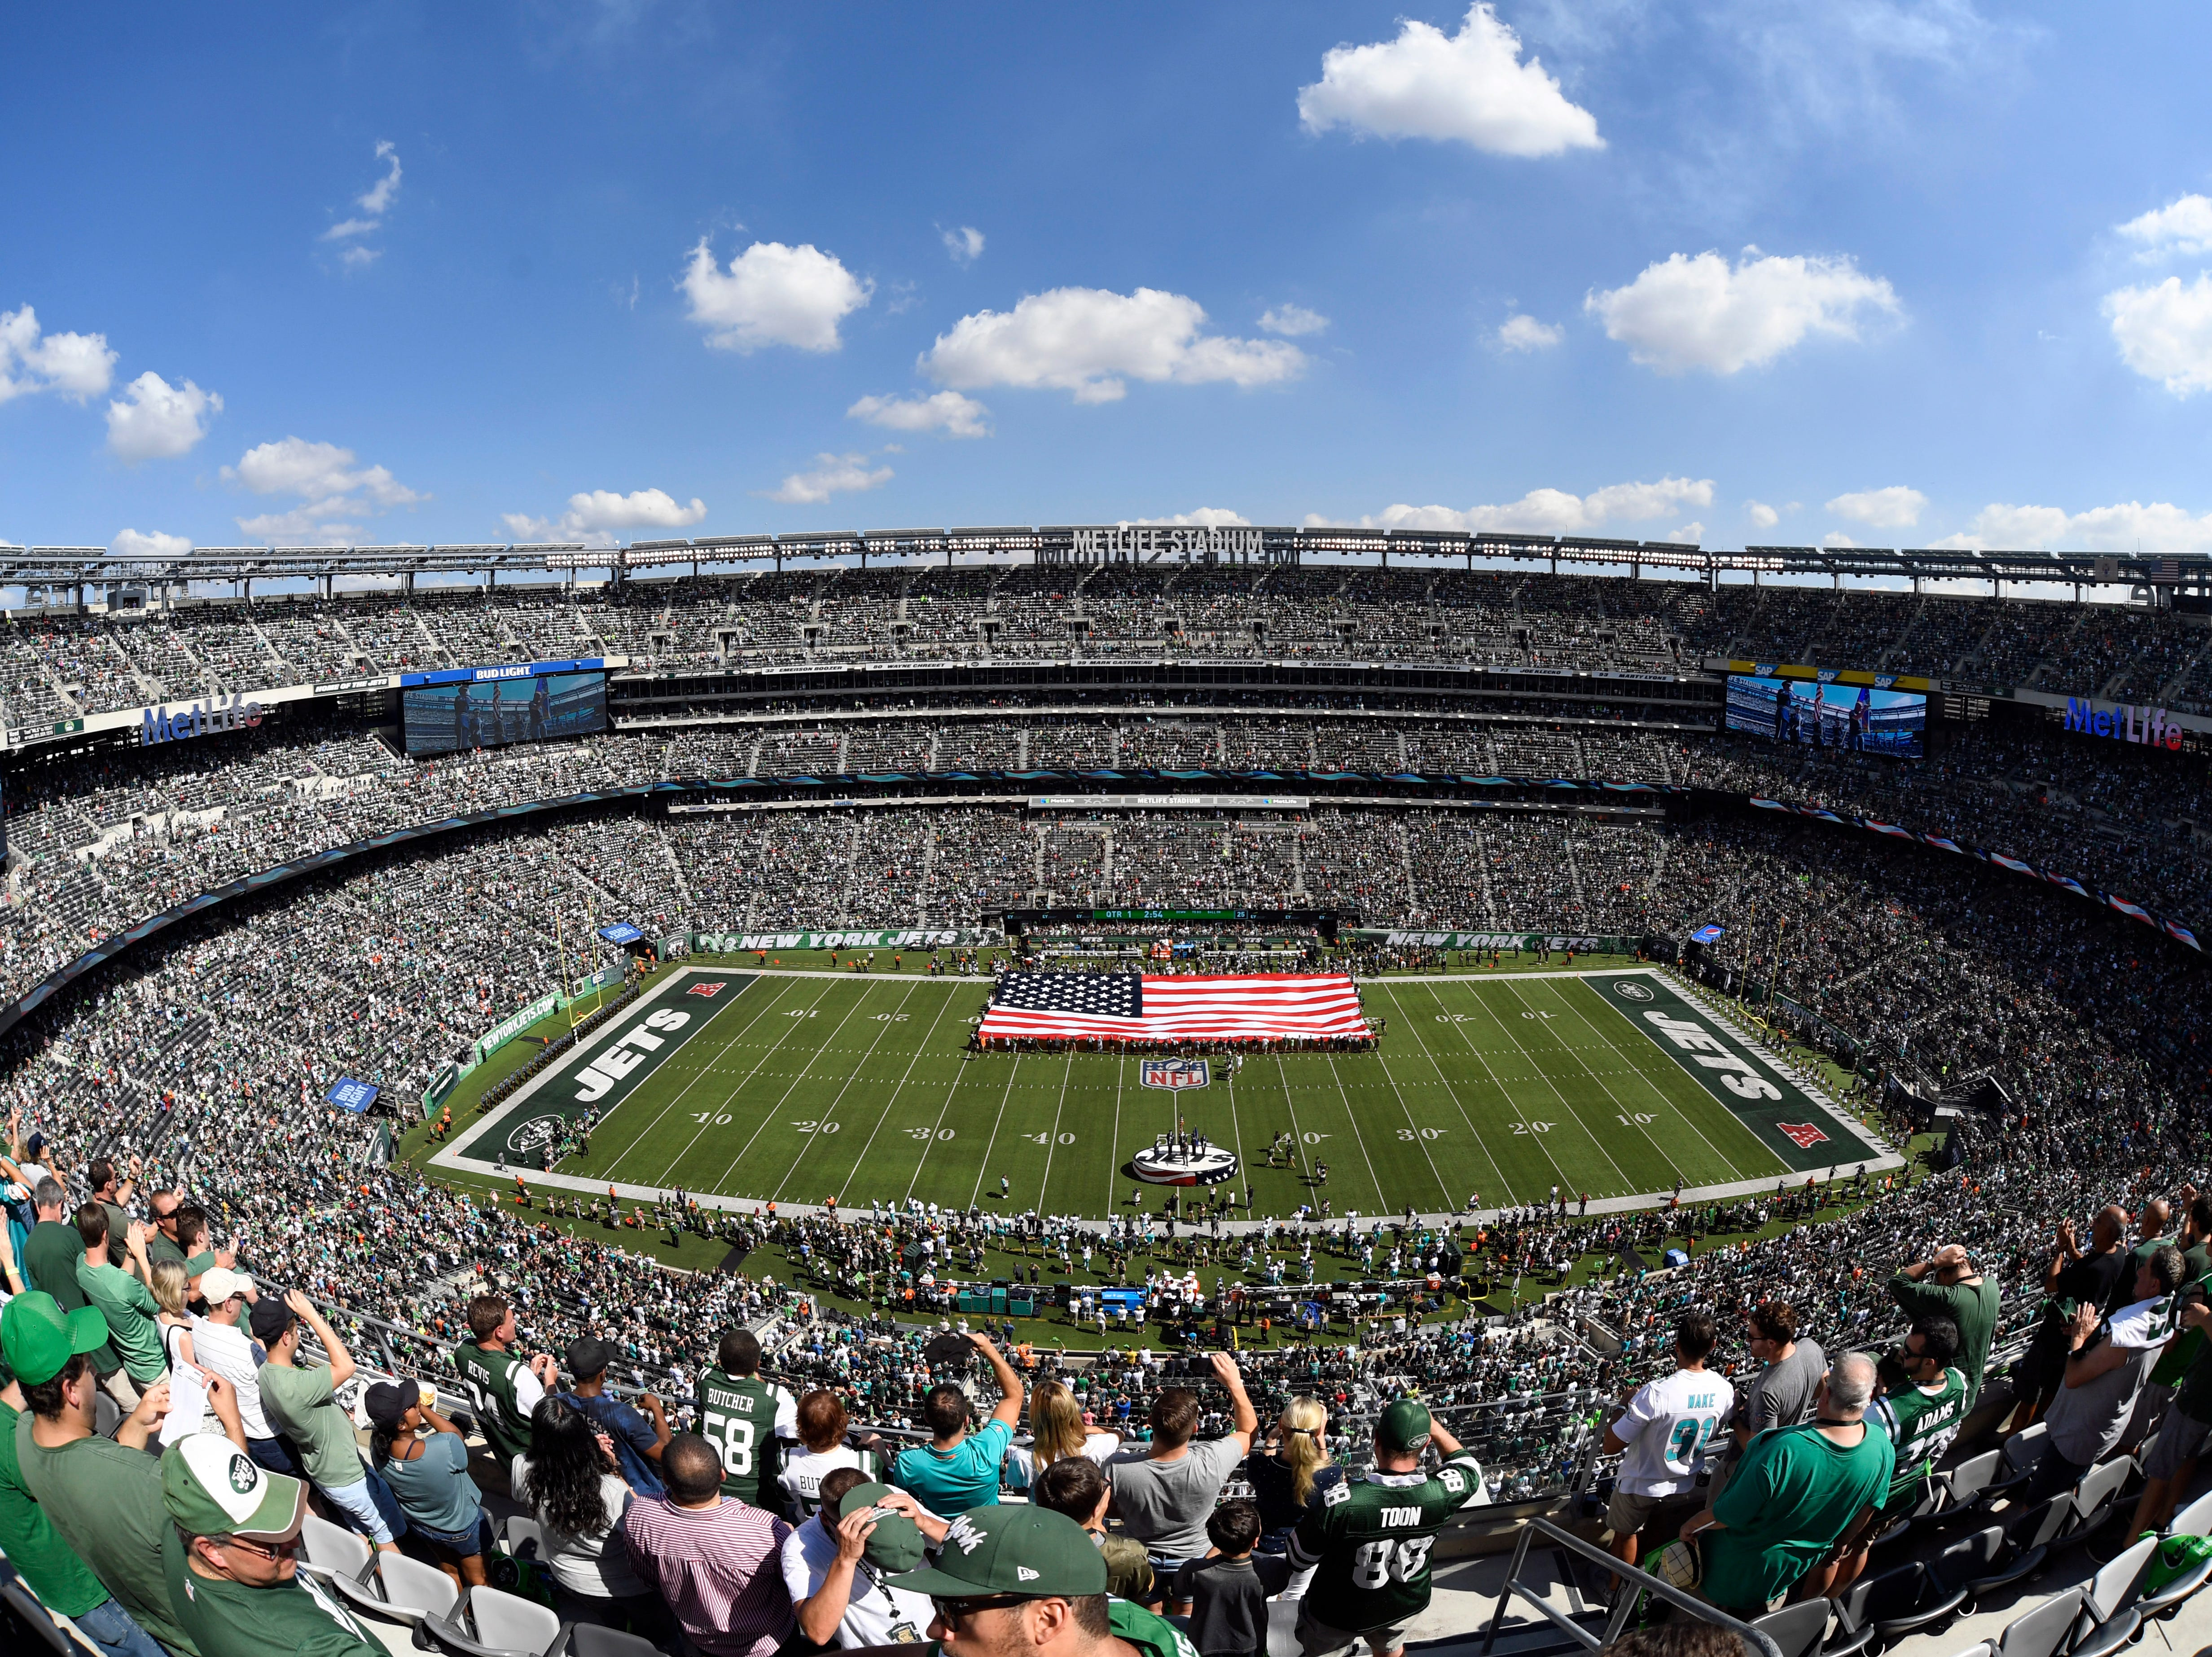 The National Anthem plays ahead of the regular season game between the New York Jets and the Miami Dolphins at MetLife Stadium in East Rutherford, NJ on Sunday, September 16, 2018.